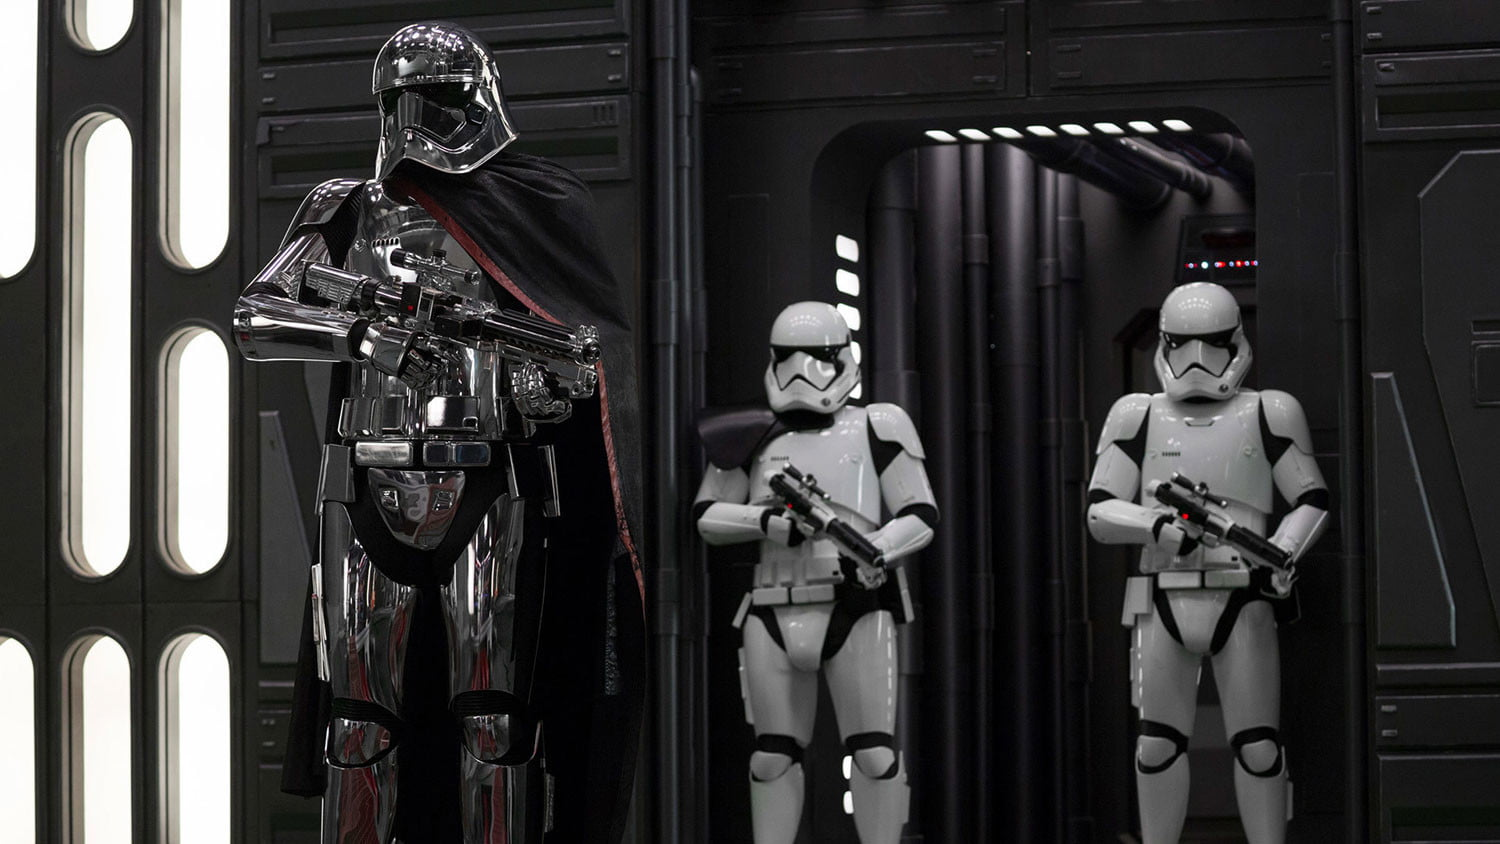 Star Wars Episode Viii News Rumors Everything You Need To Know Digital Trends